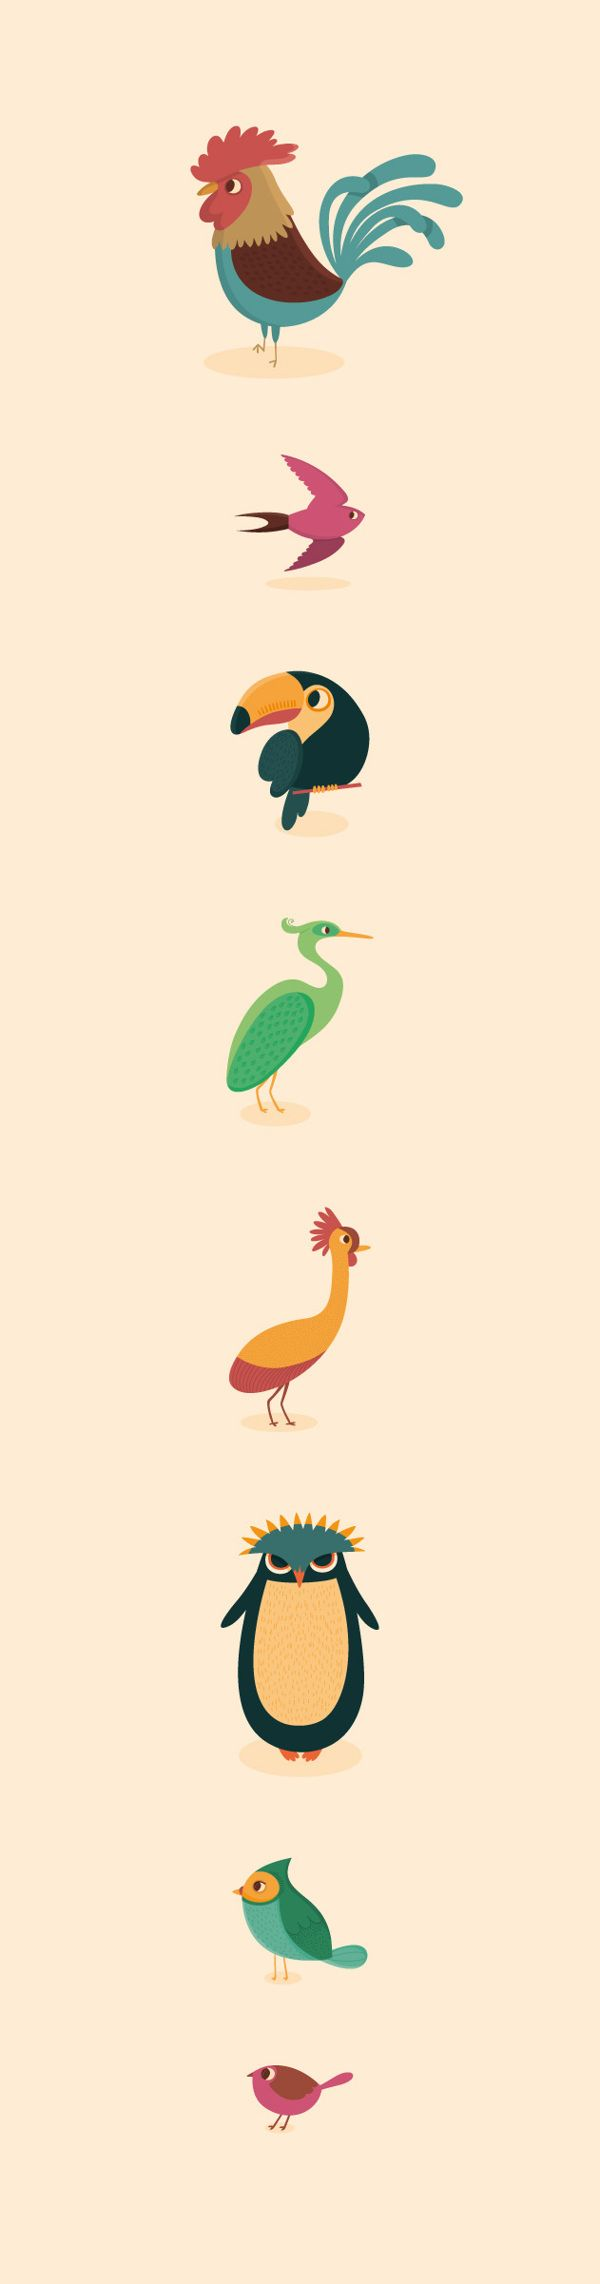 1000+ images about Birds on Pinterest.